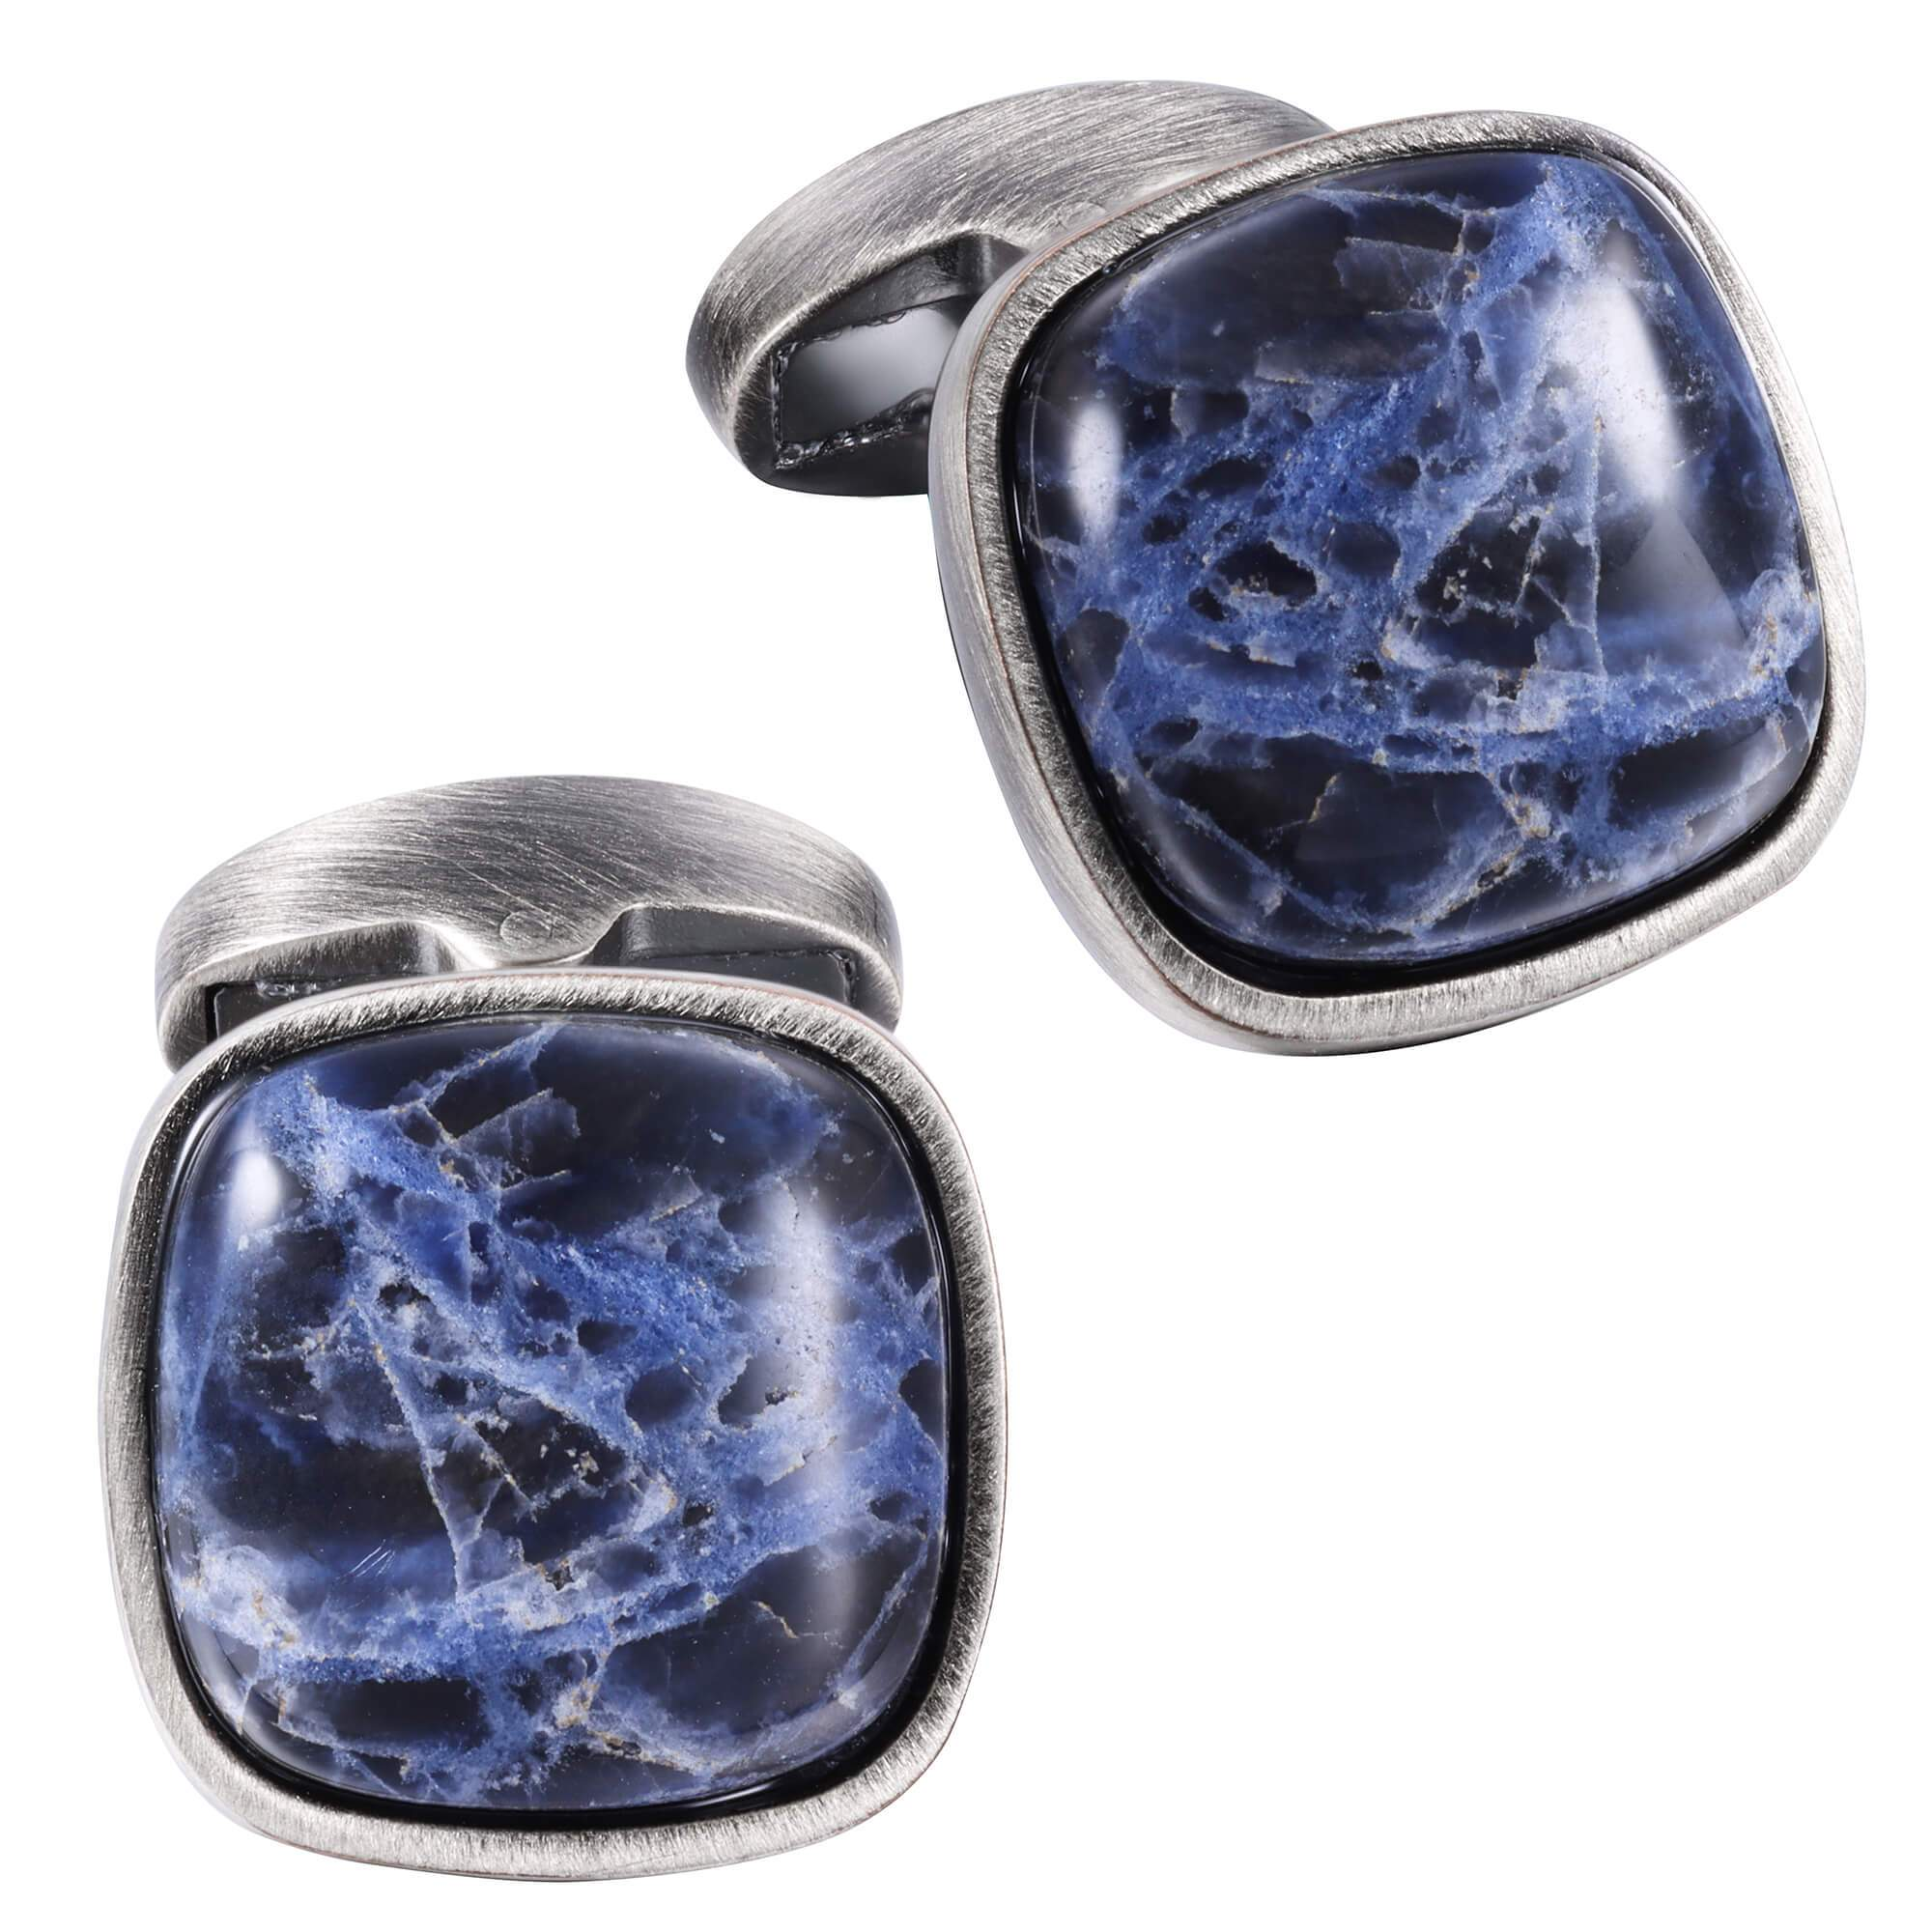 Sodalite in Antique Silver Cufflinks Classic & Modern Cufflinks Clinks Australia Default